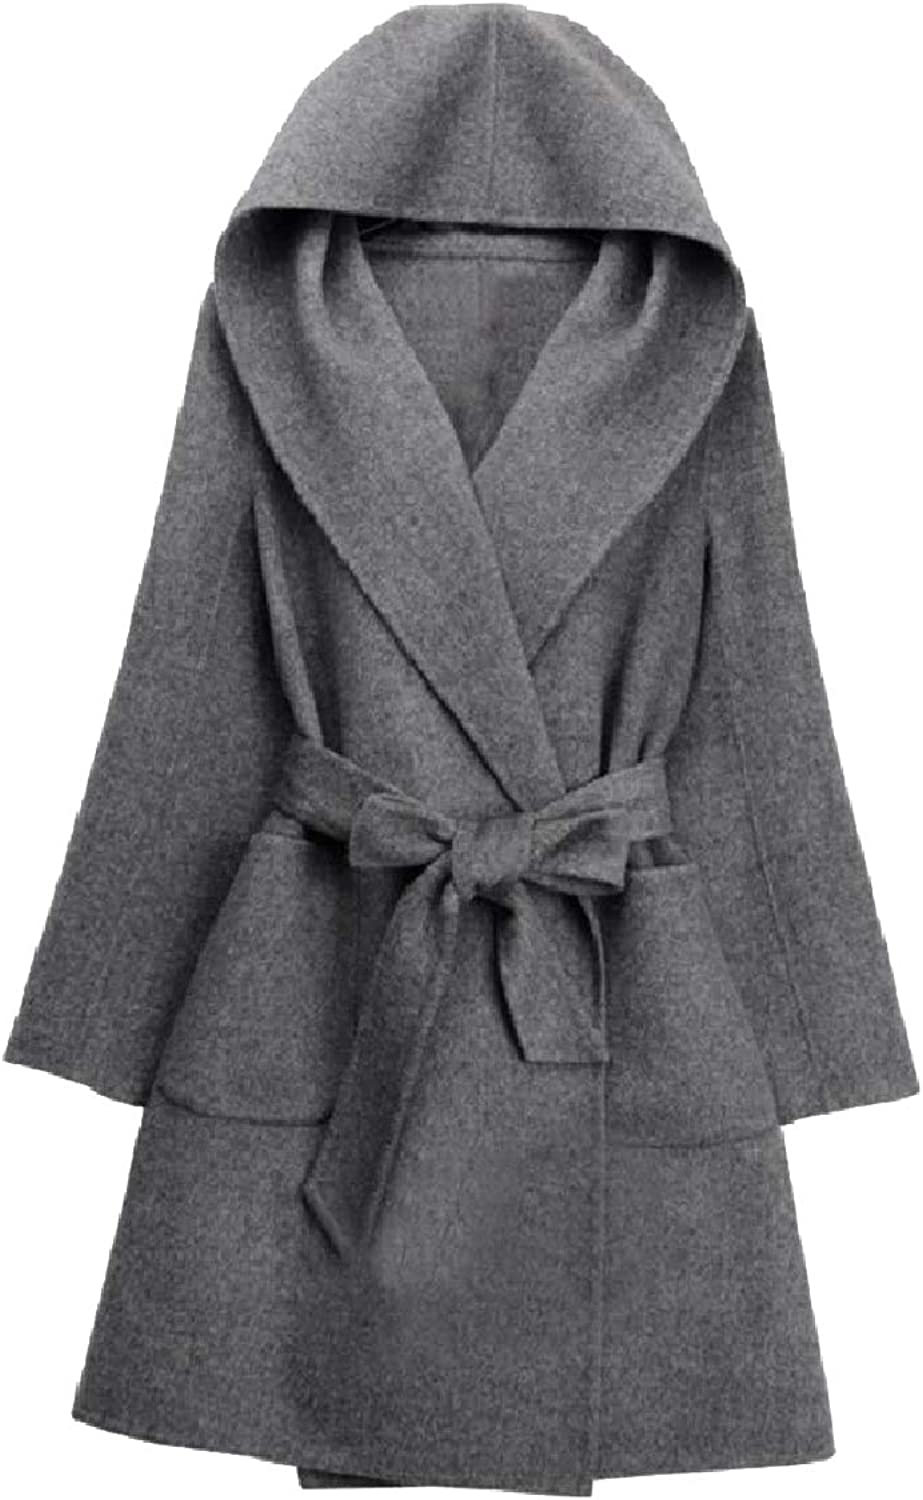 Mfasica Womens Fall Winter Long Slim Fit Trench Belted Design Pea Coat